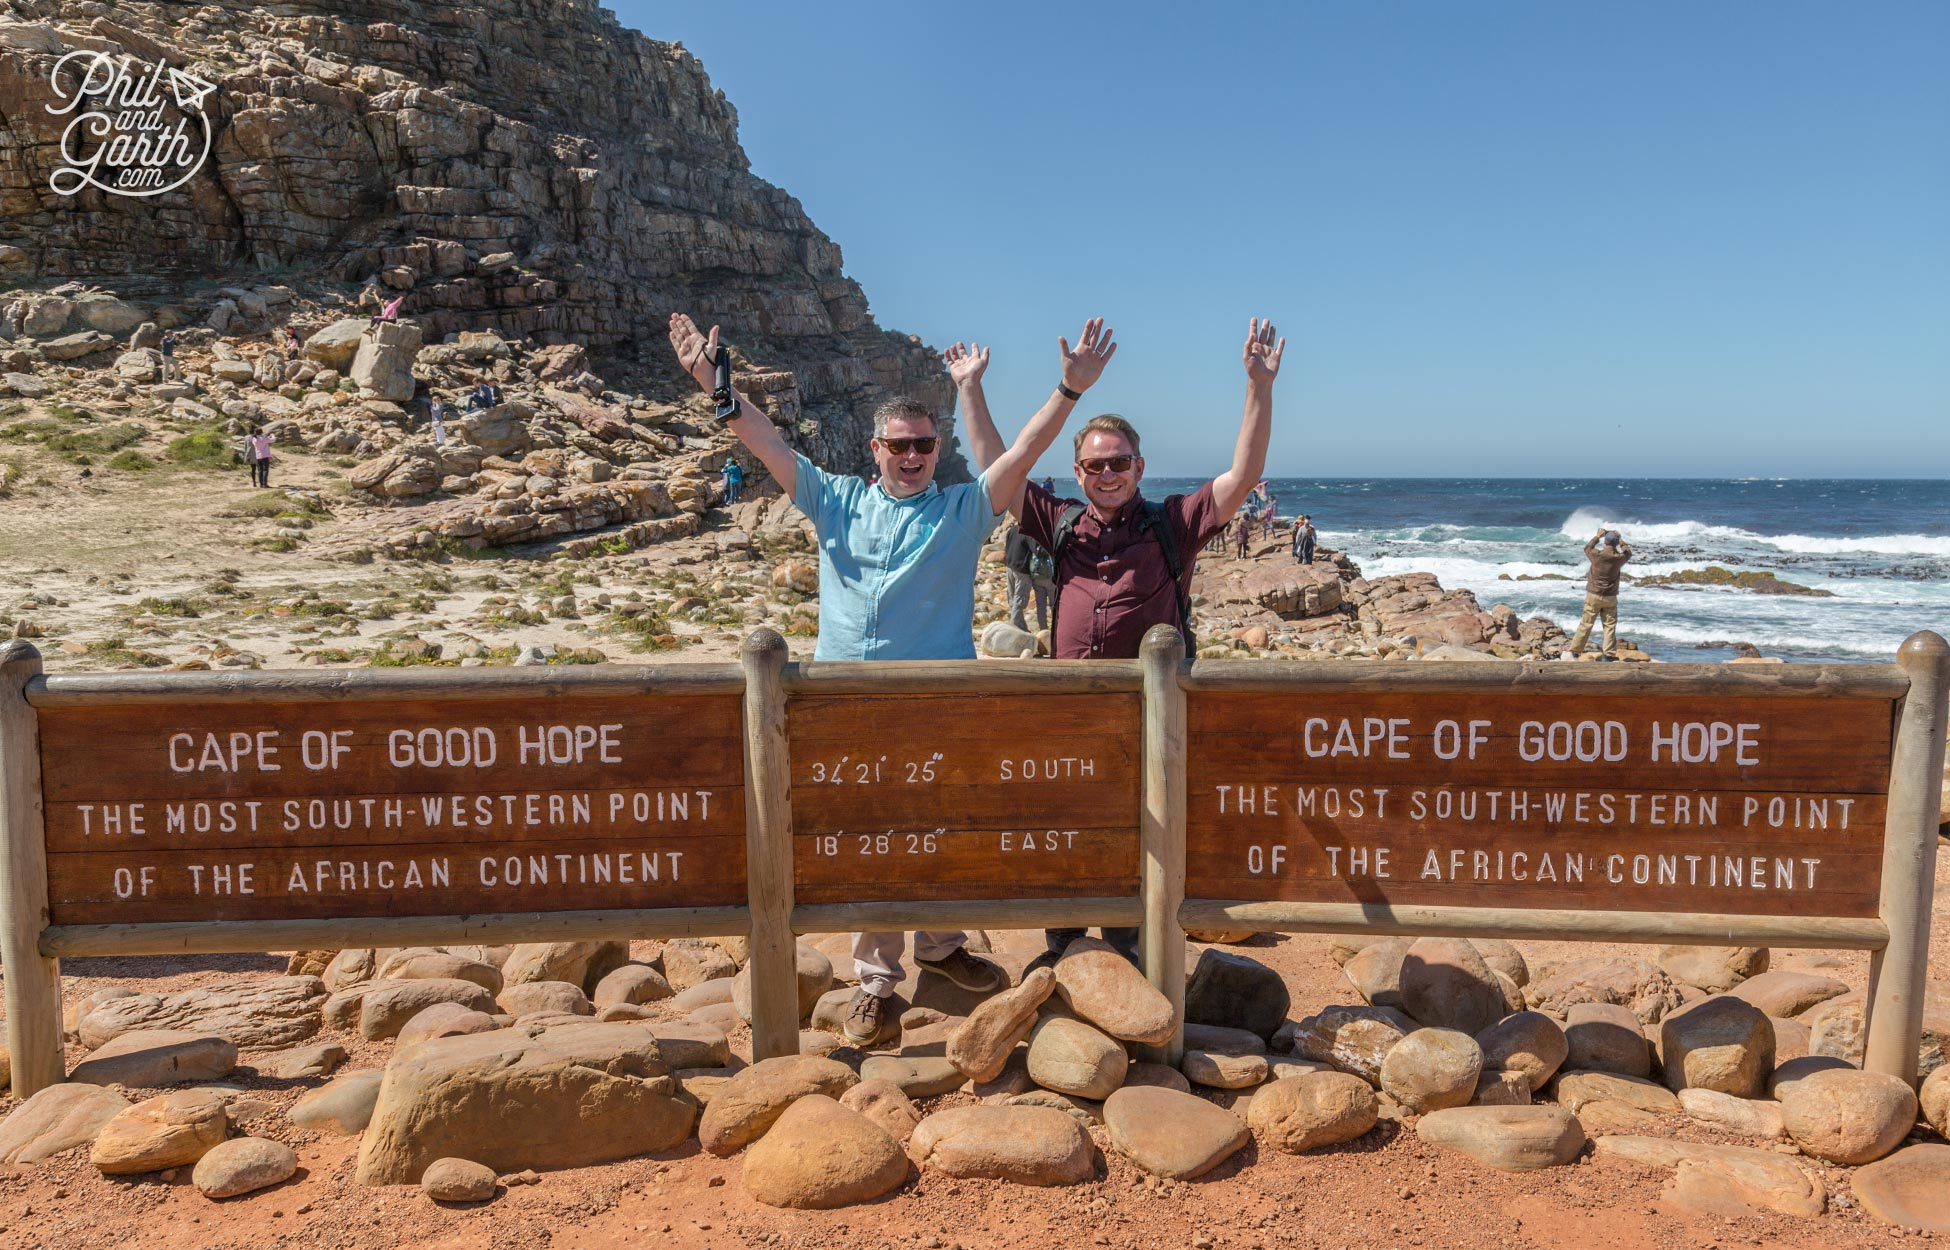 Phil and Garth at The Cape of Good Hope